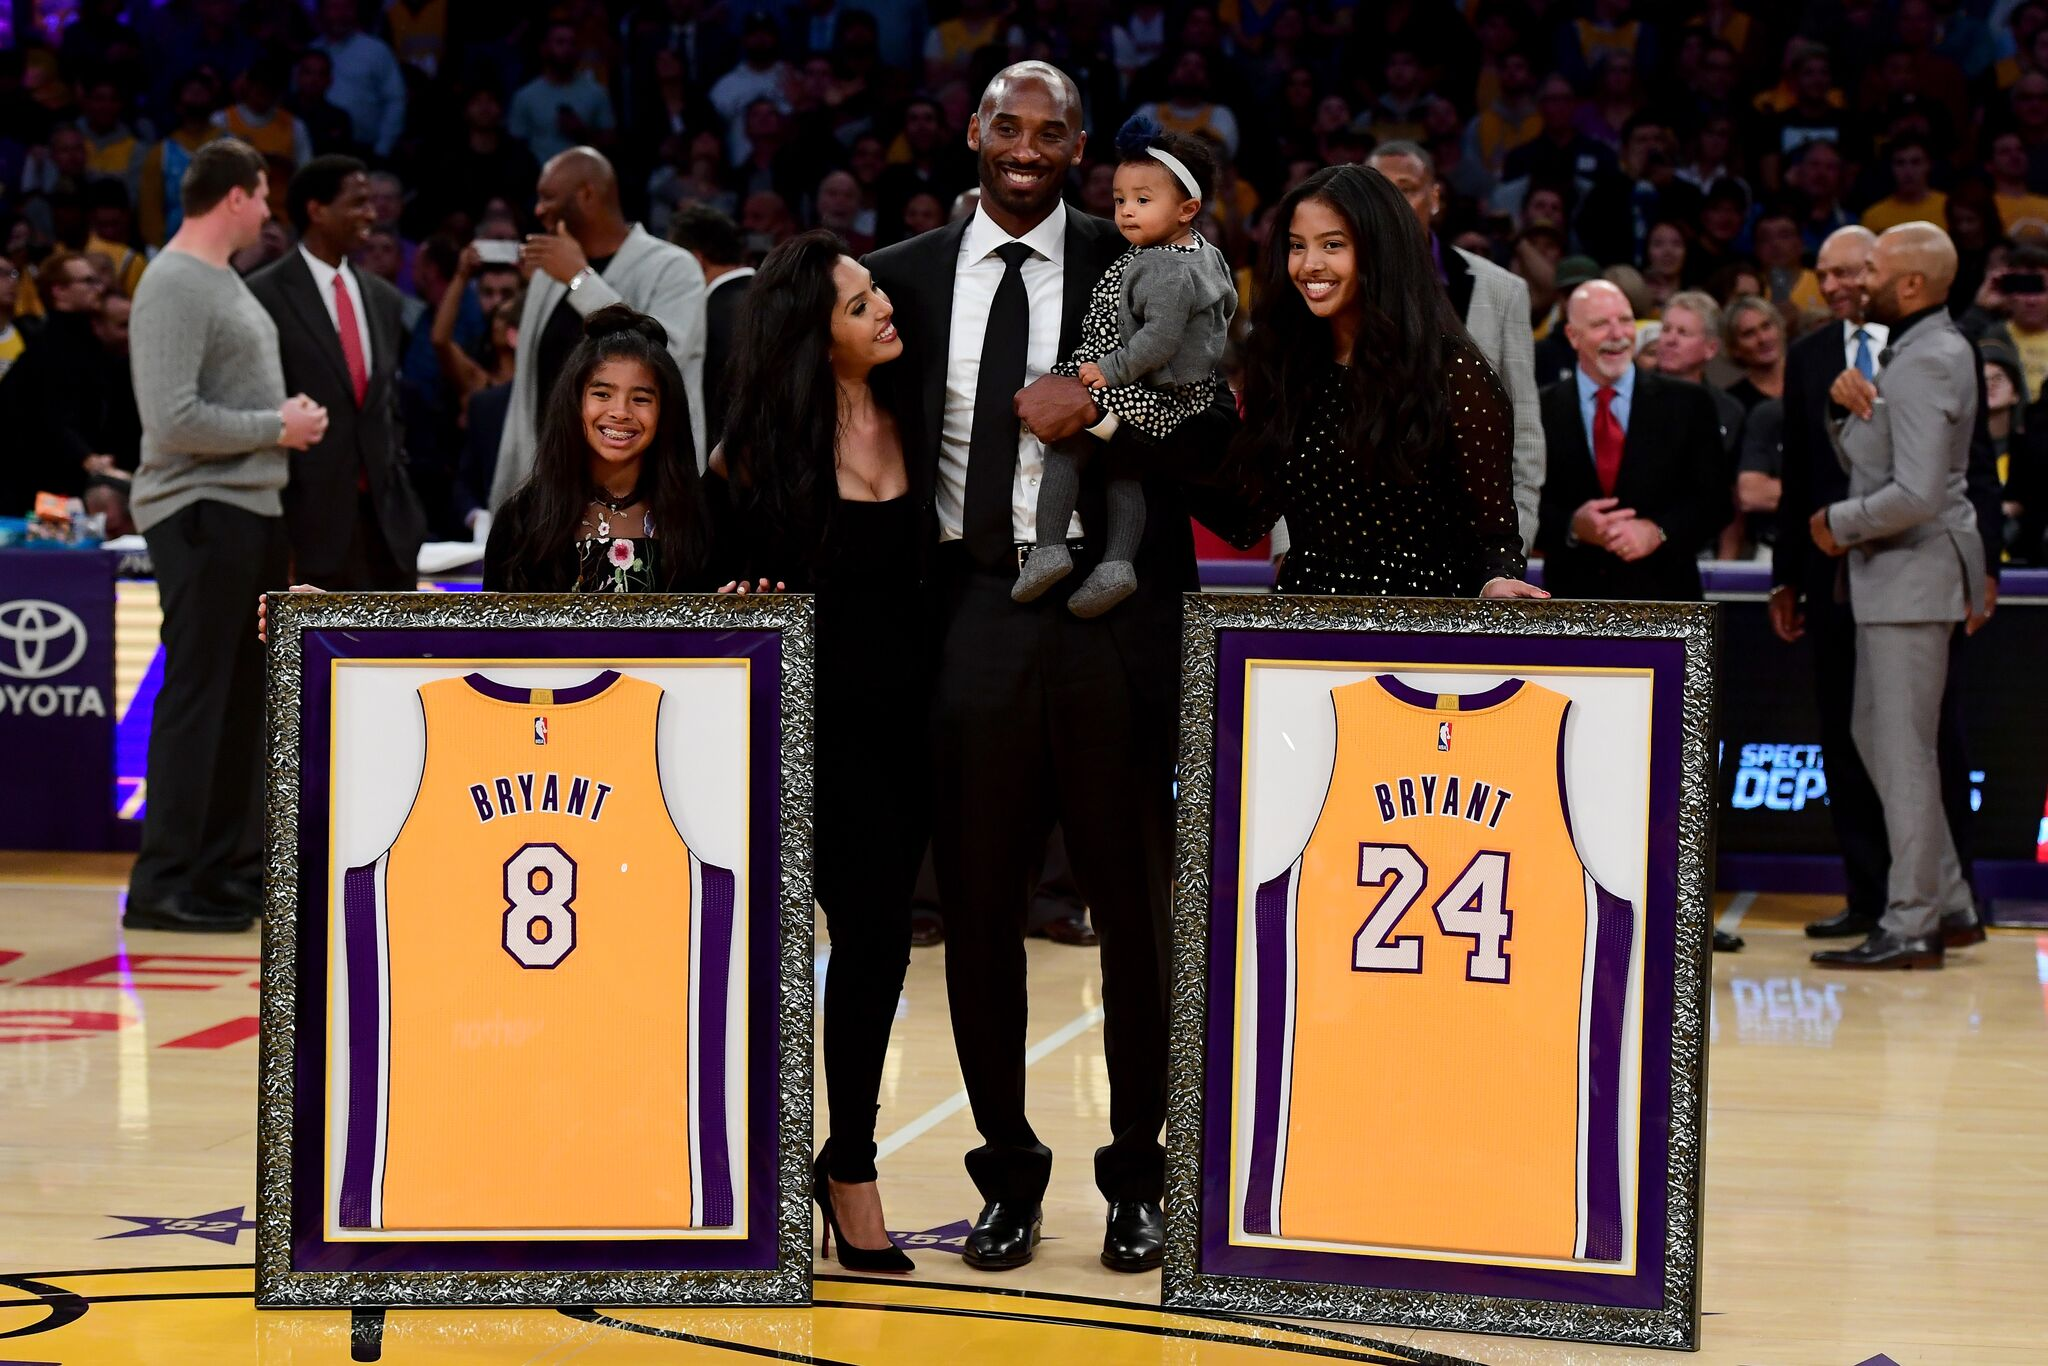 Kobe Bryant poses with his family at halftime after both his #8 and #24 Los Angeles Lakers jerseys are retired at Staples Center on December 18, 2017  | Getty Images / Global Images Ukraine